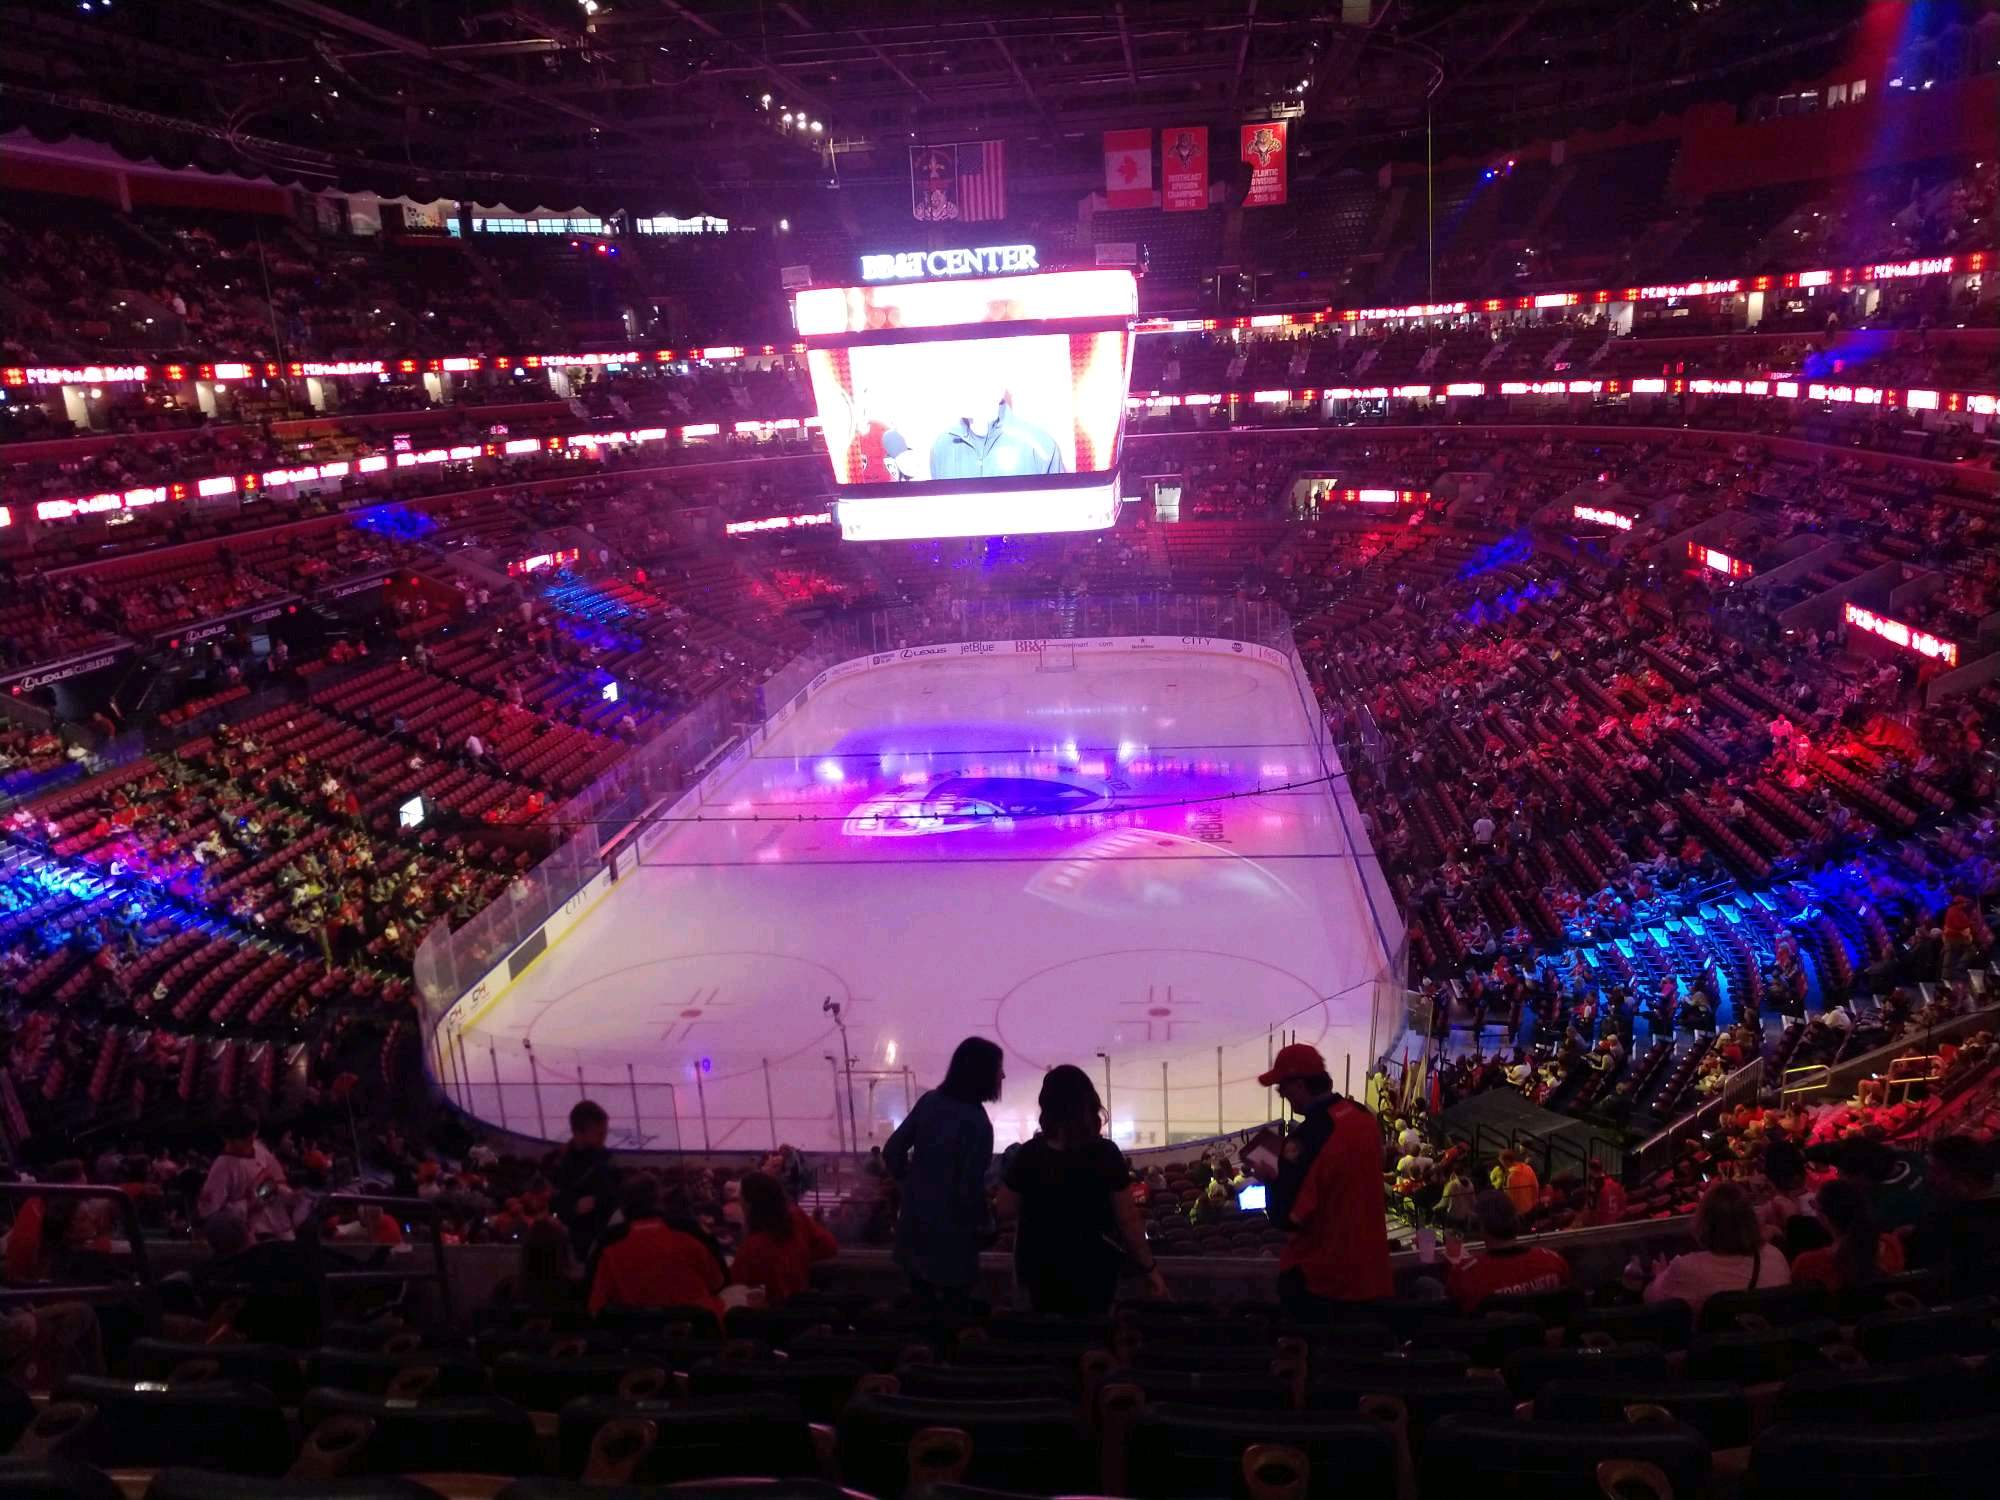 BB&T Center Section CL26 Row 8 Seat 11